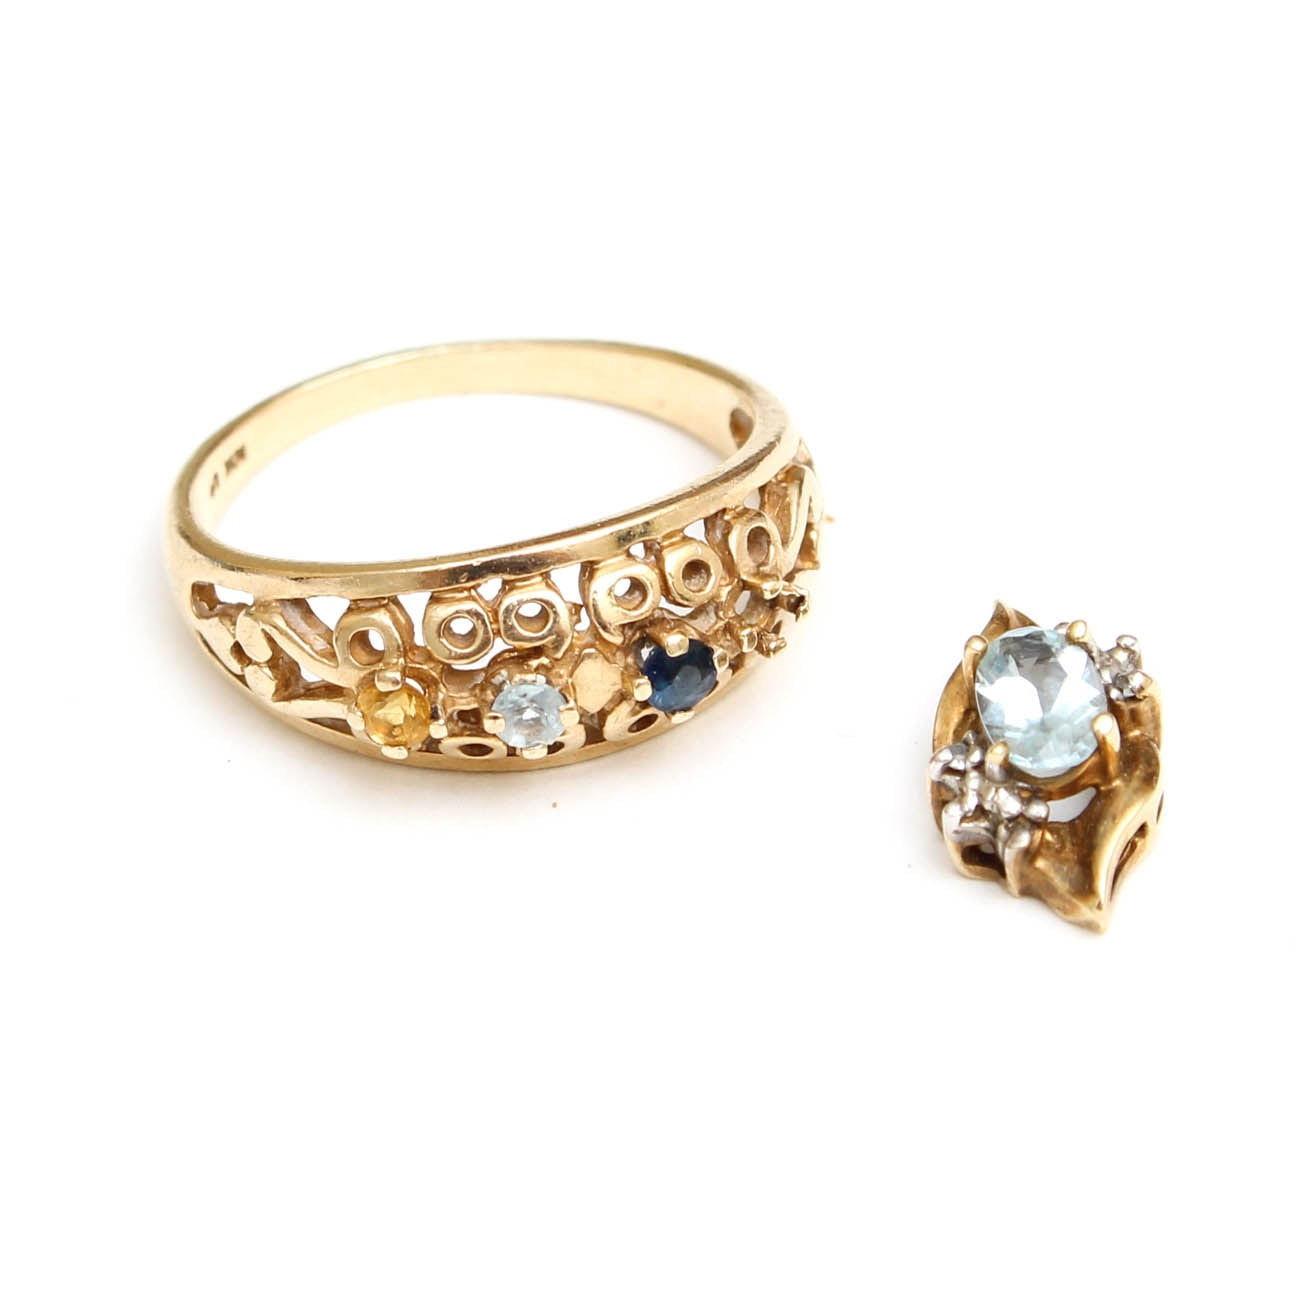 10K Yellow Gold Ring and Pendant with Gemstones